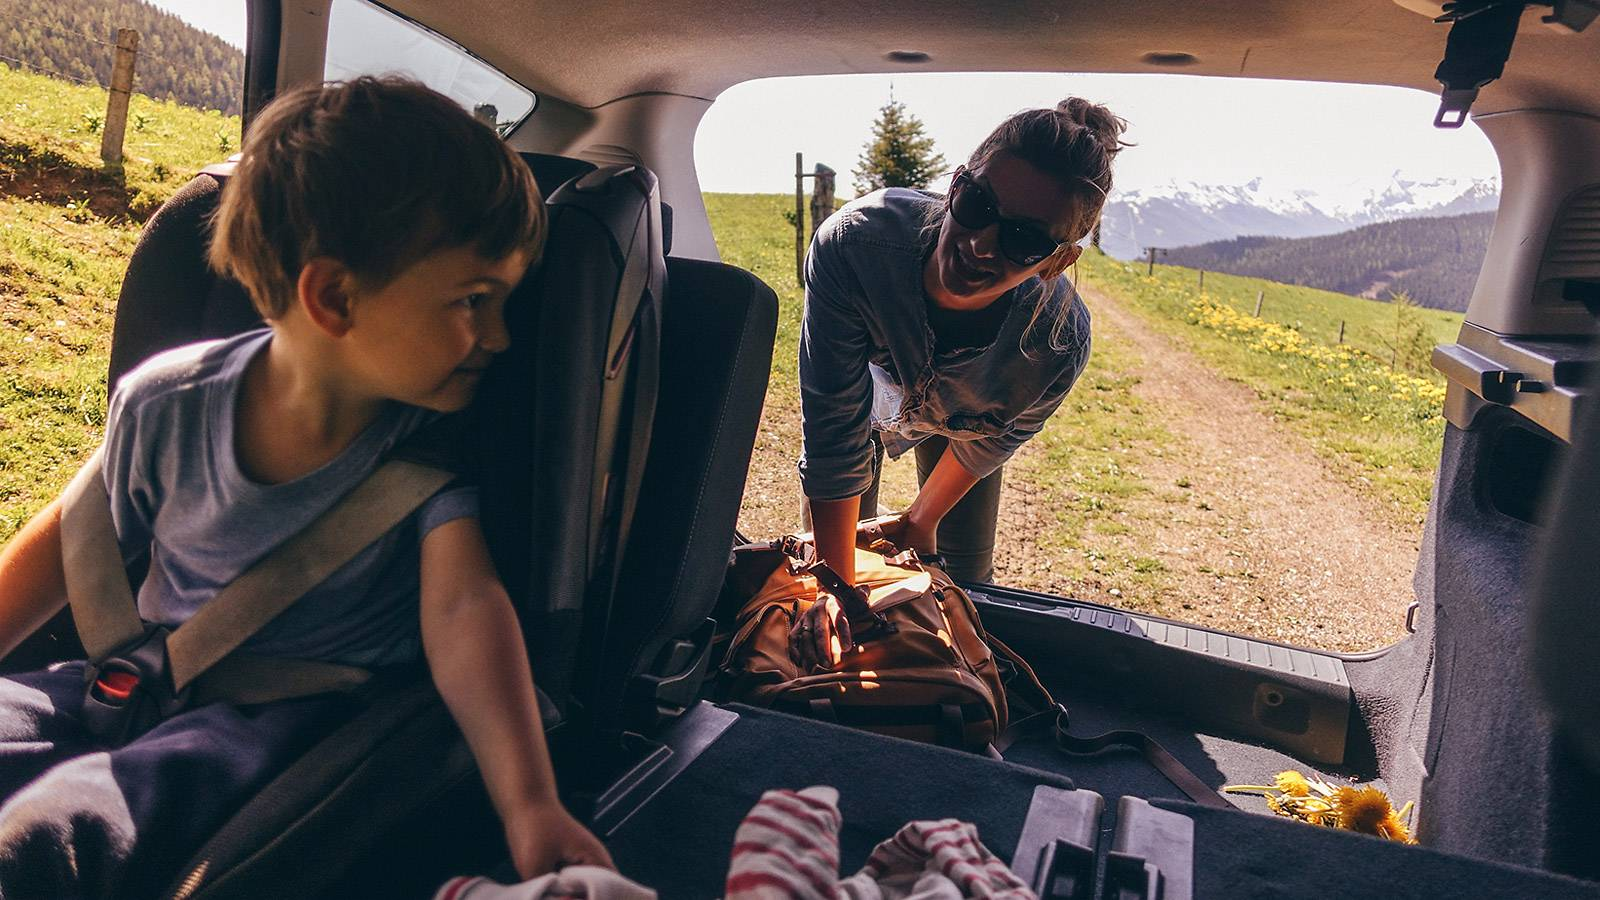 TOTS-Travelling-with-kids-Medical-tips2